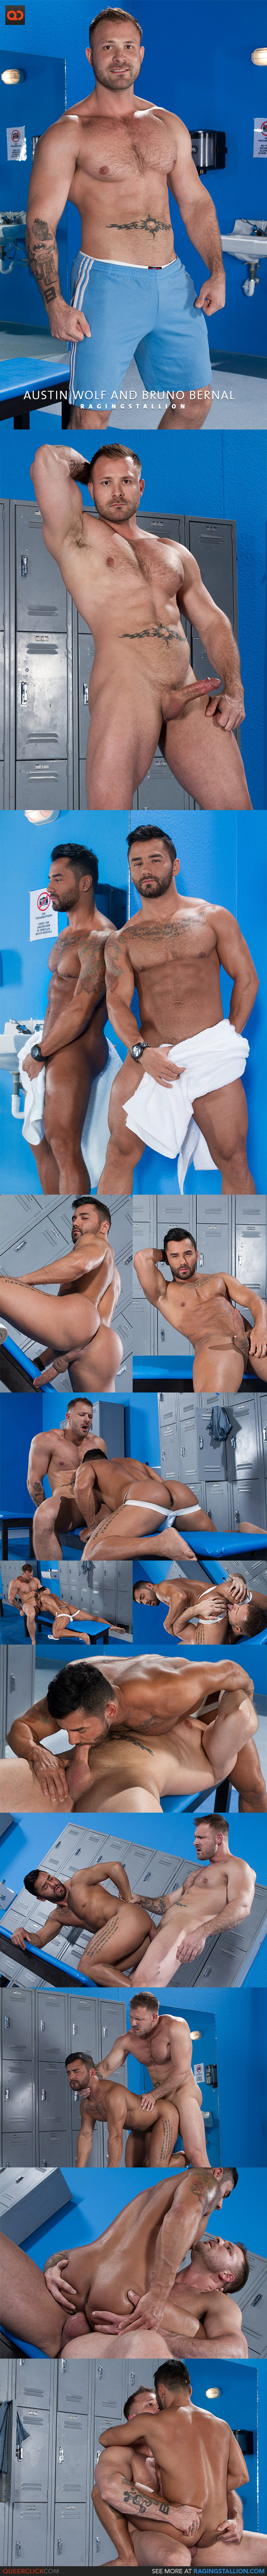 Raging Stallion: Austin Wolf and Bruno Bernal